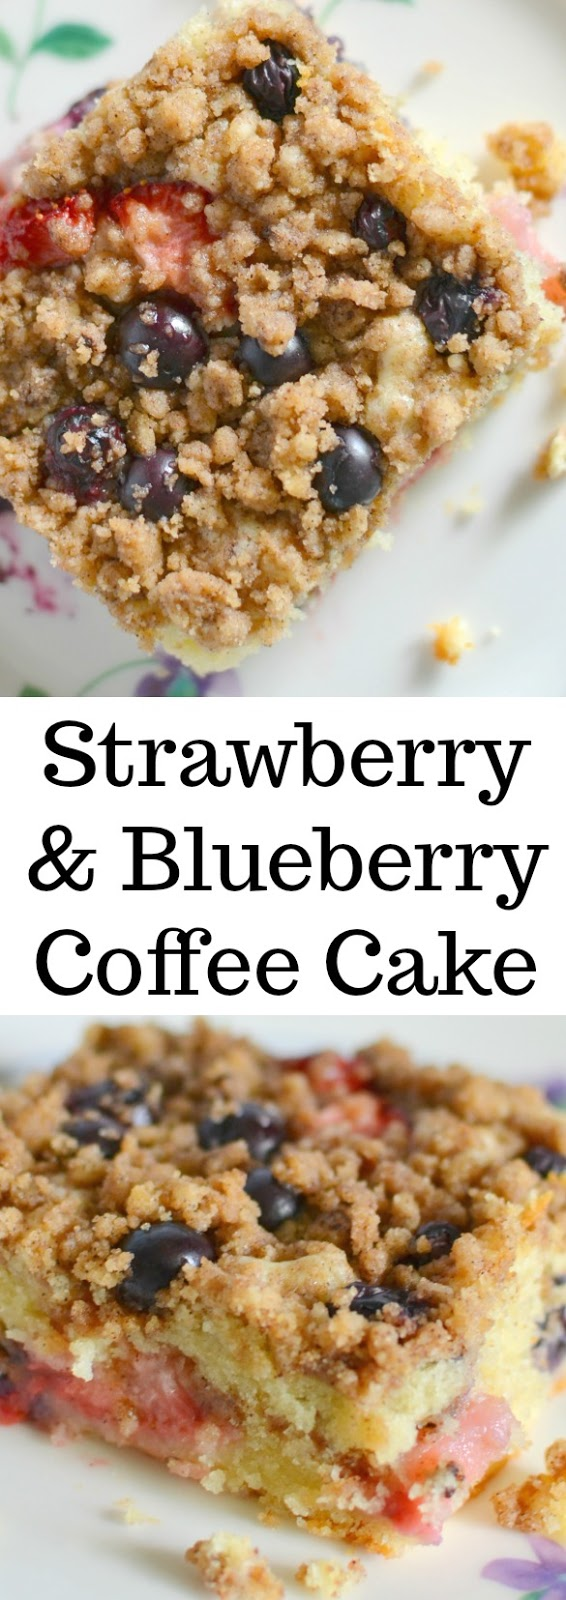 Strawberry and Blueberry Coffee Cake Recipe from Hot Eats and Cool Reads! This delicious cake is packed full of berries and is great for dessert, brunch or breakfast! Also great with blackberries, raspberries or cranberries!